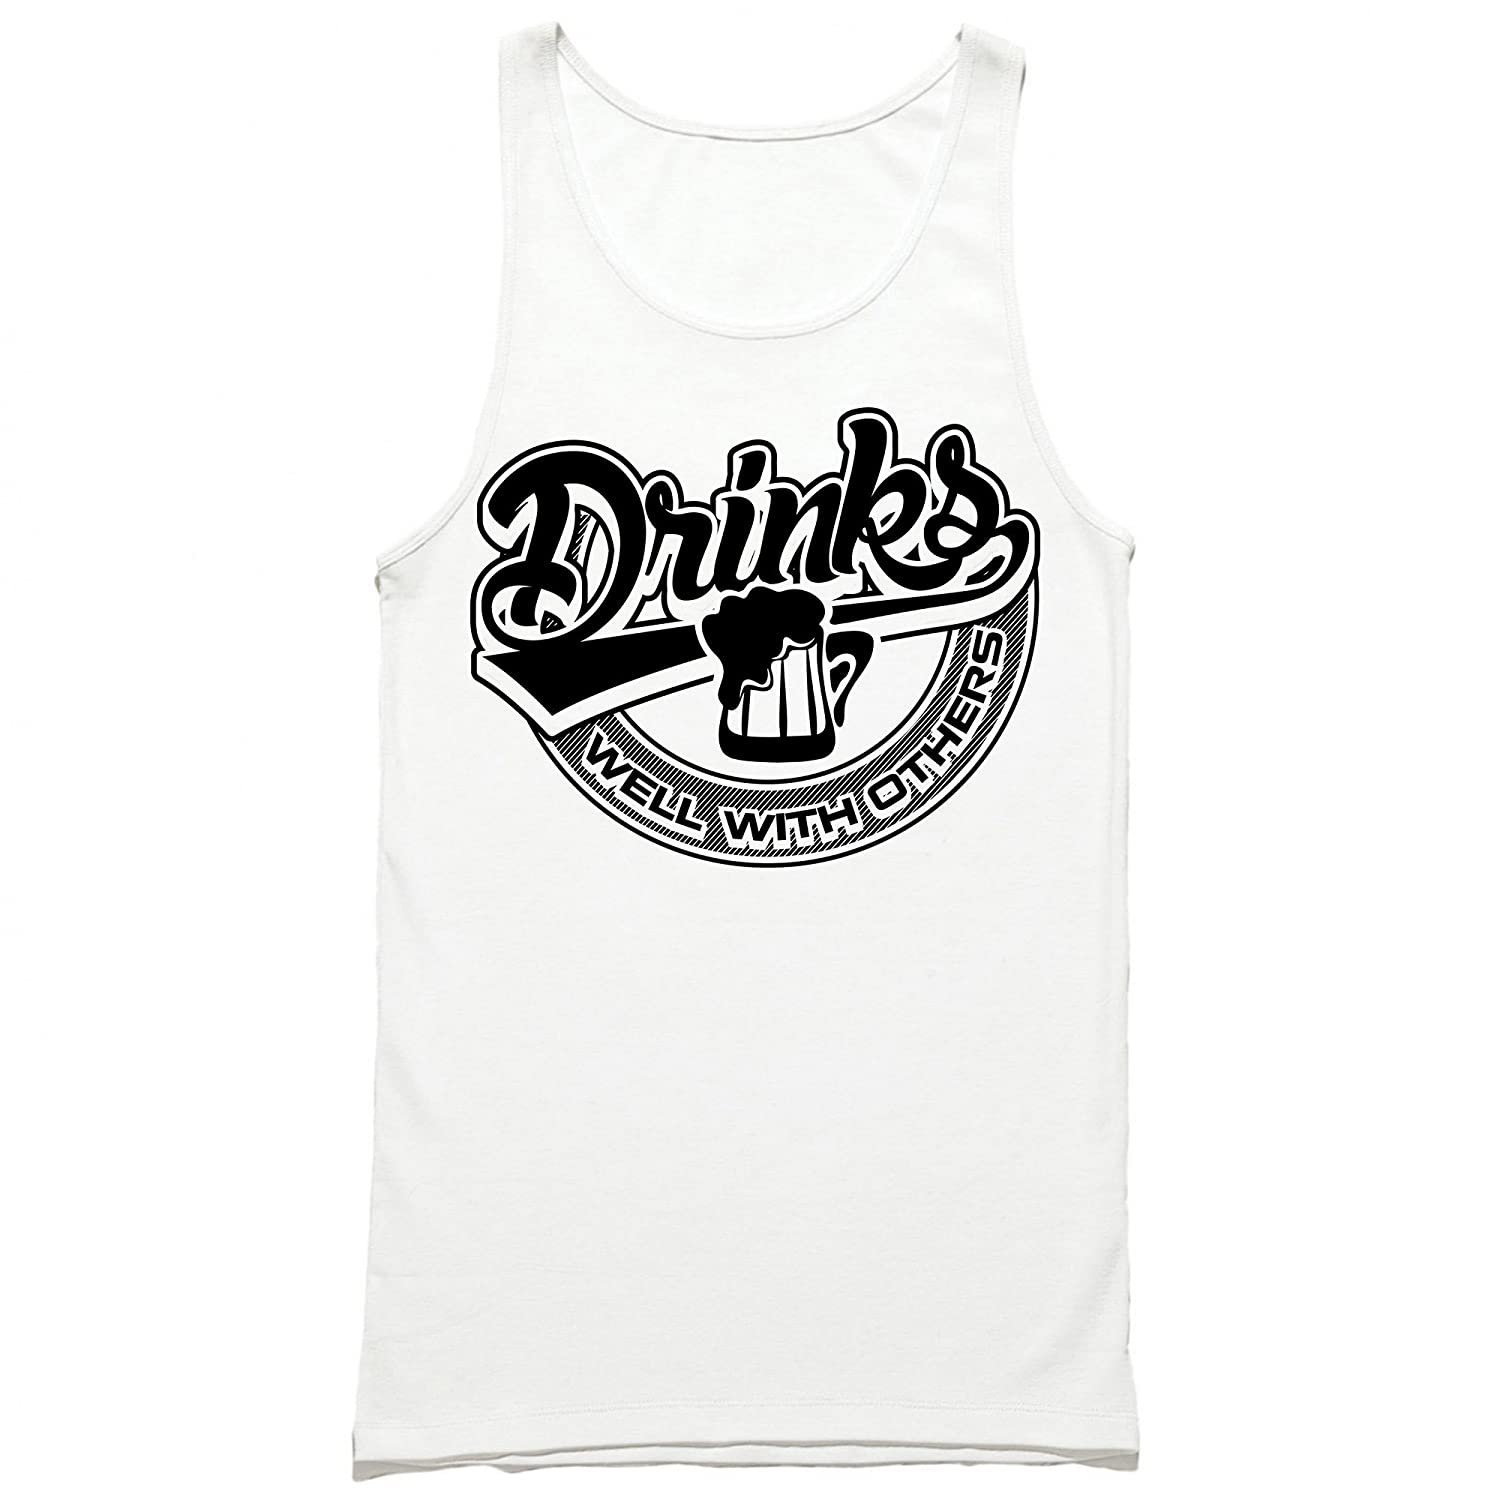 2e4abaa4d657d7 Amazon.com  Drinks Well with Others Tank Top - Funny Drinking Shirt - Party Tank  Top  Clothing